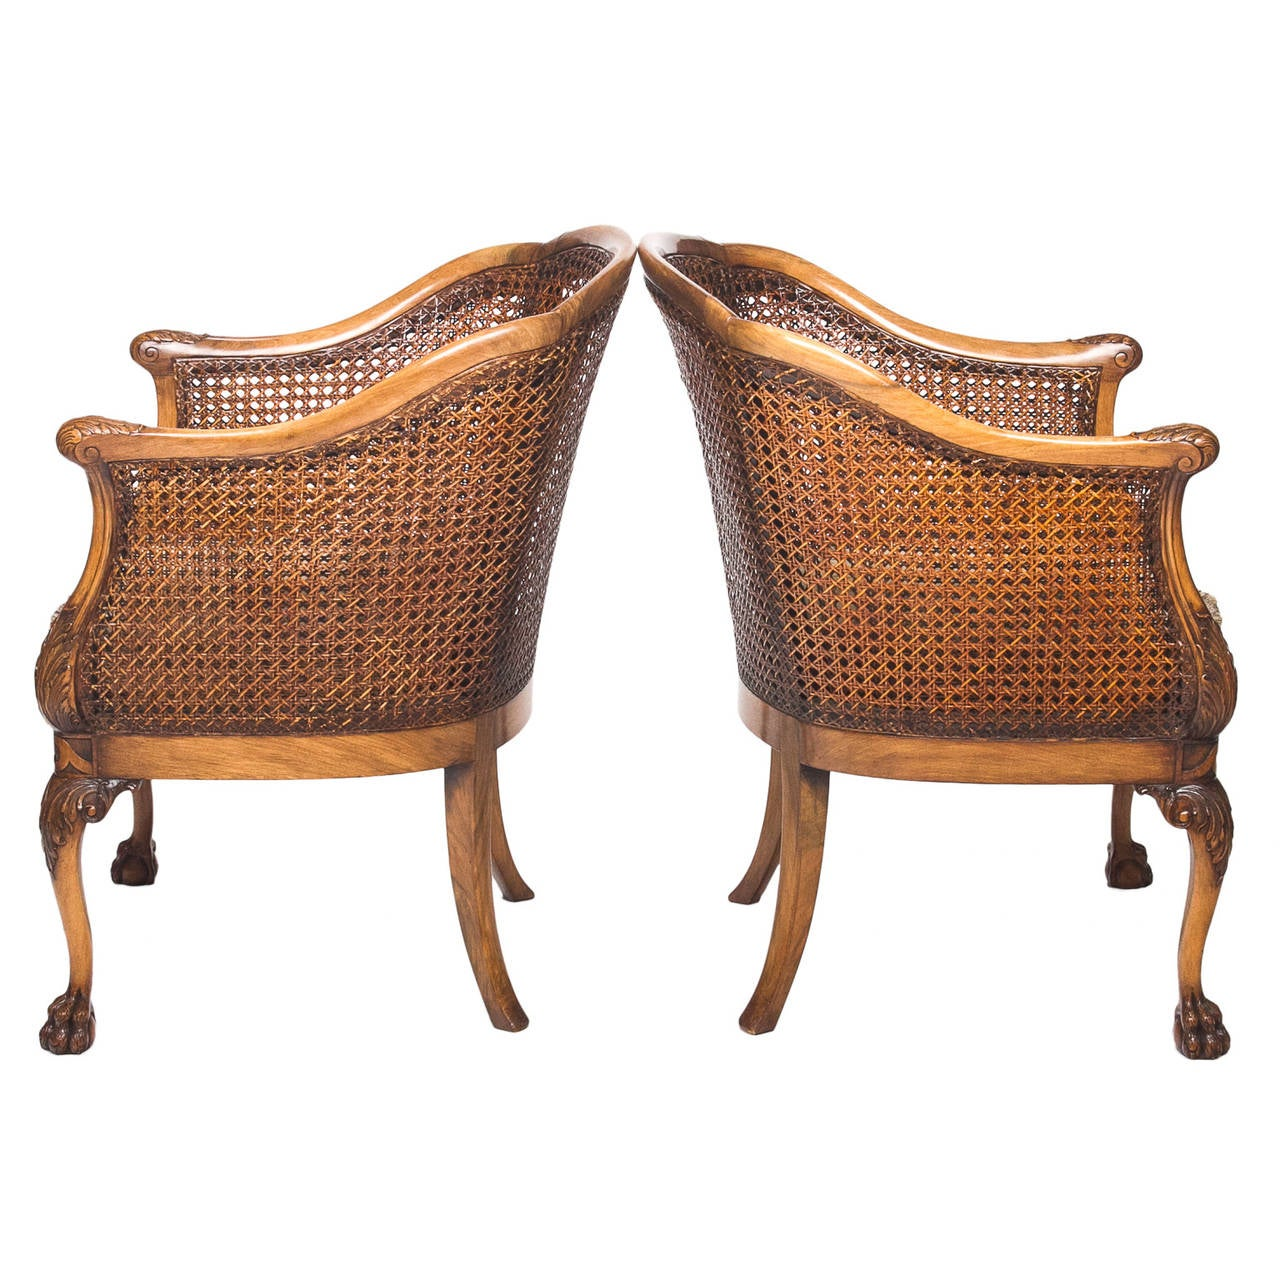 barrel back chair exercises pdf georgian style walnut and cane chairs with